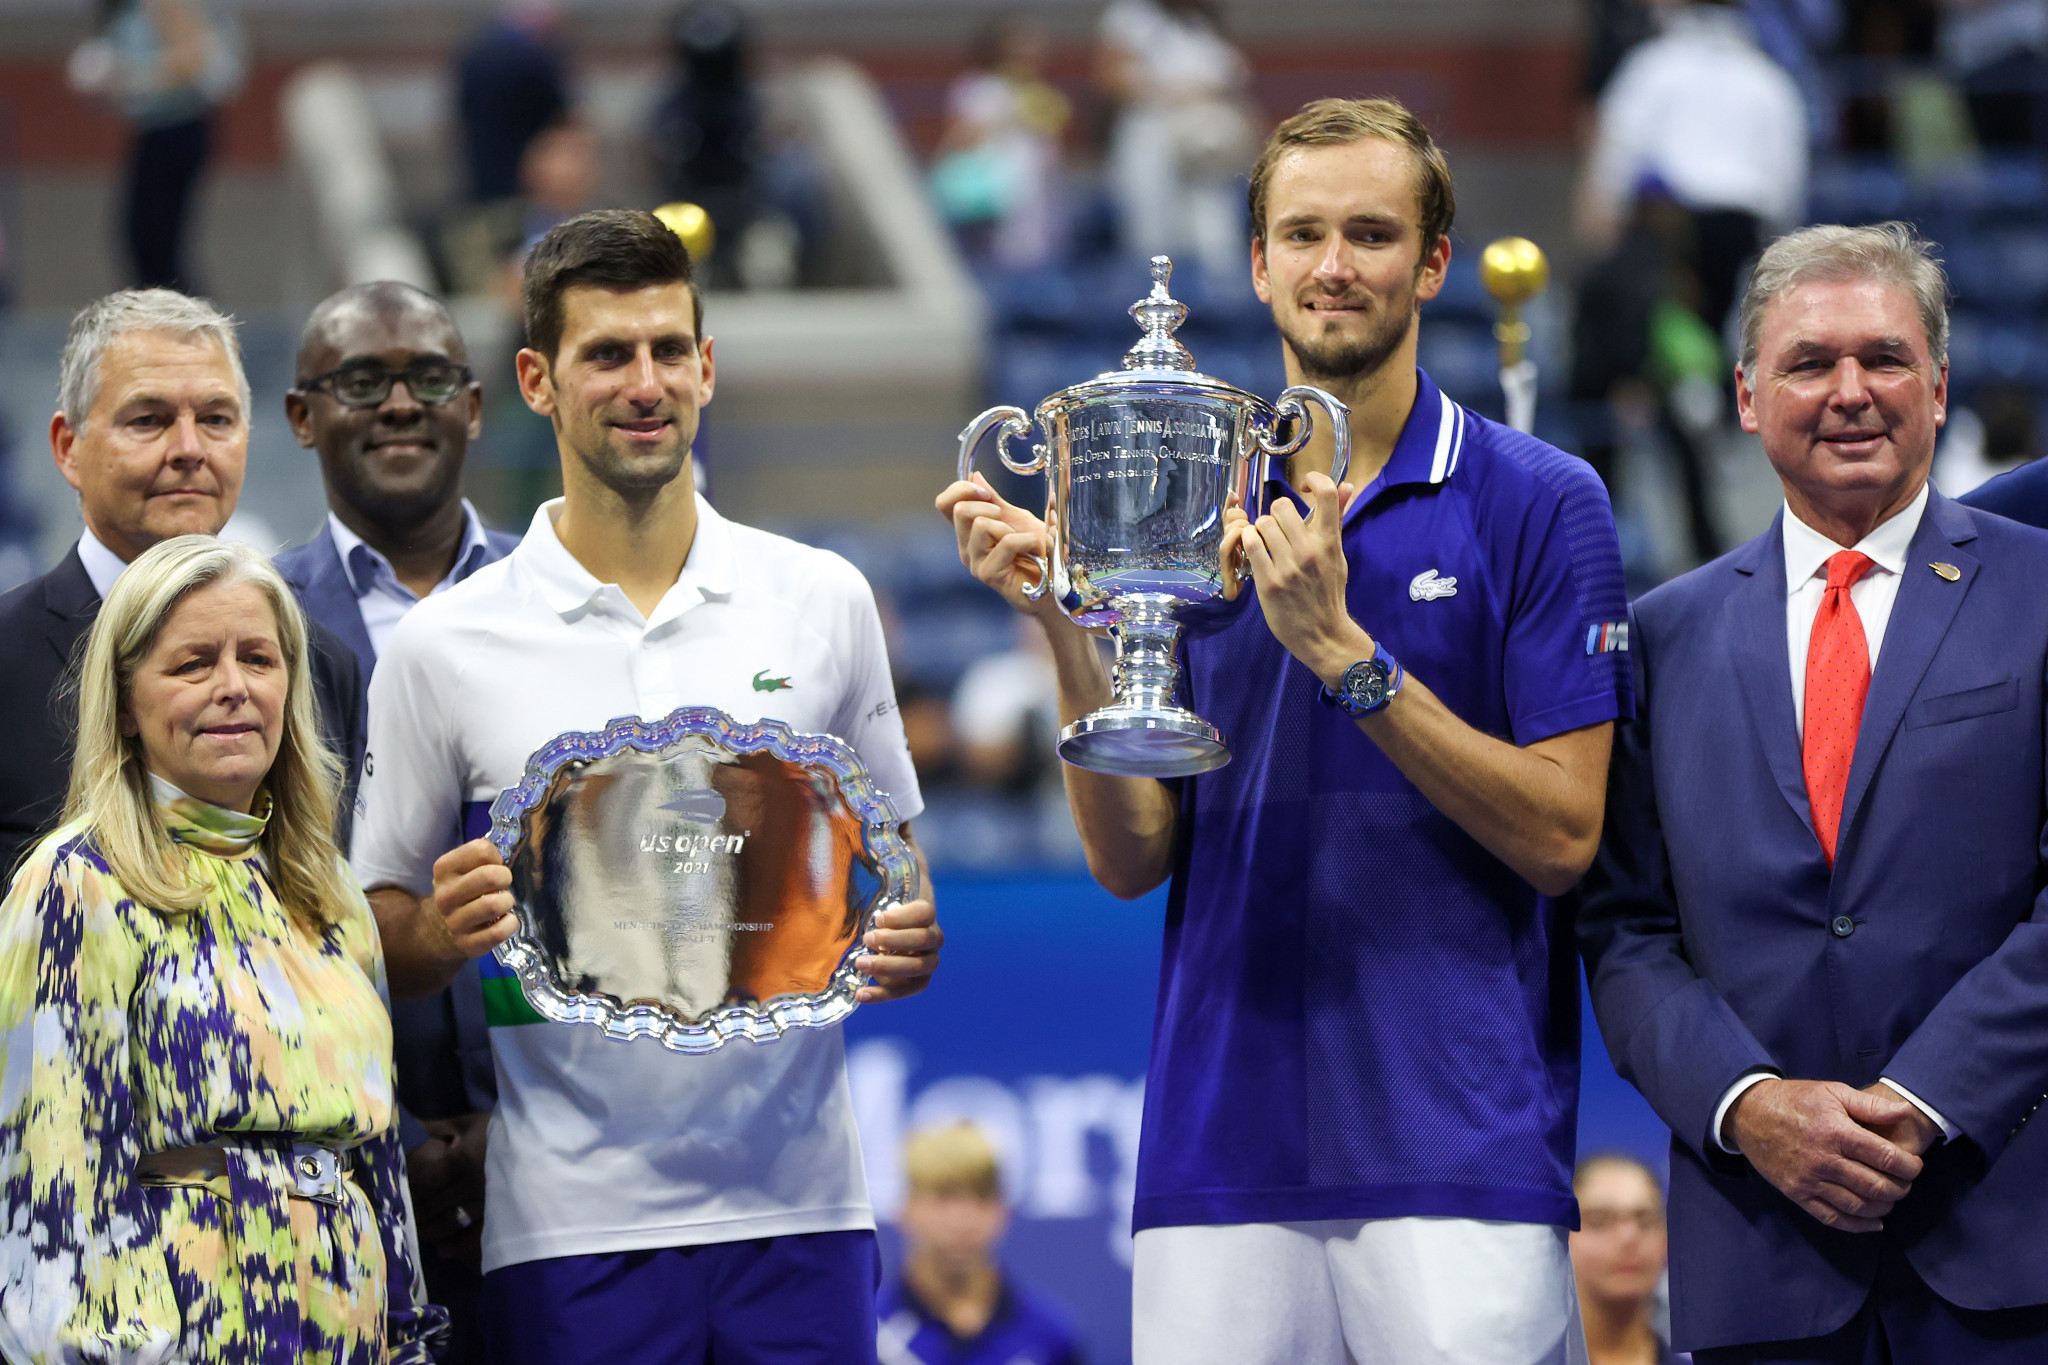 Instead Medvedev is the first non-Big Three player to beat one of the Big Three in a Grand Slam final since 2016 ©Getty Images